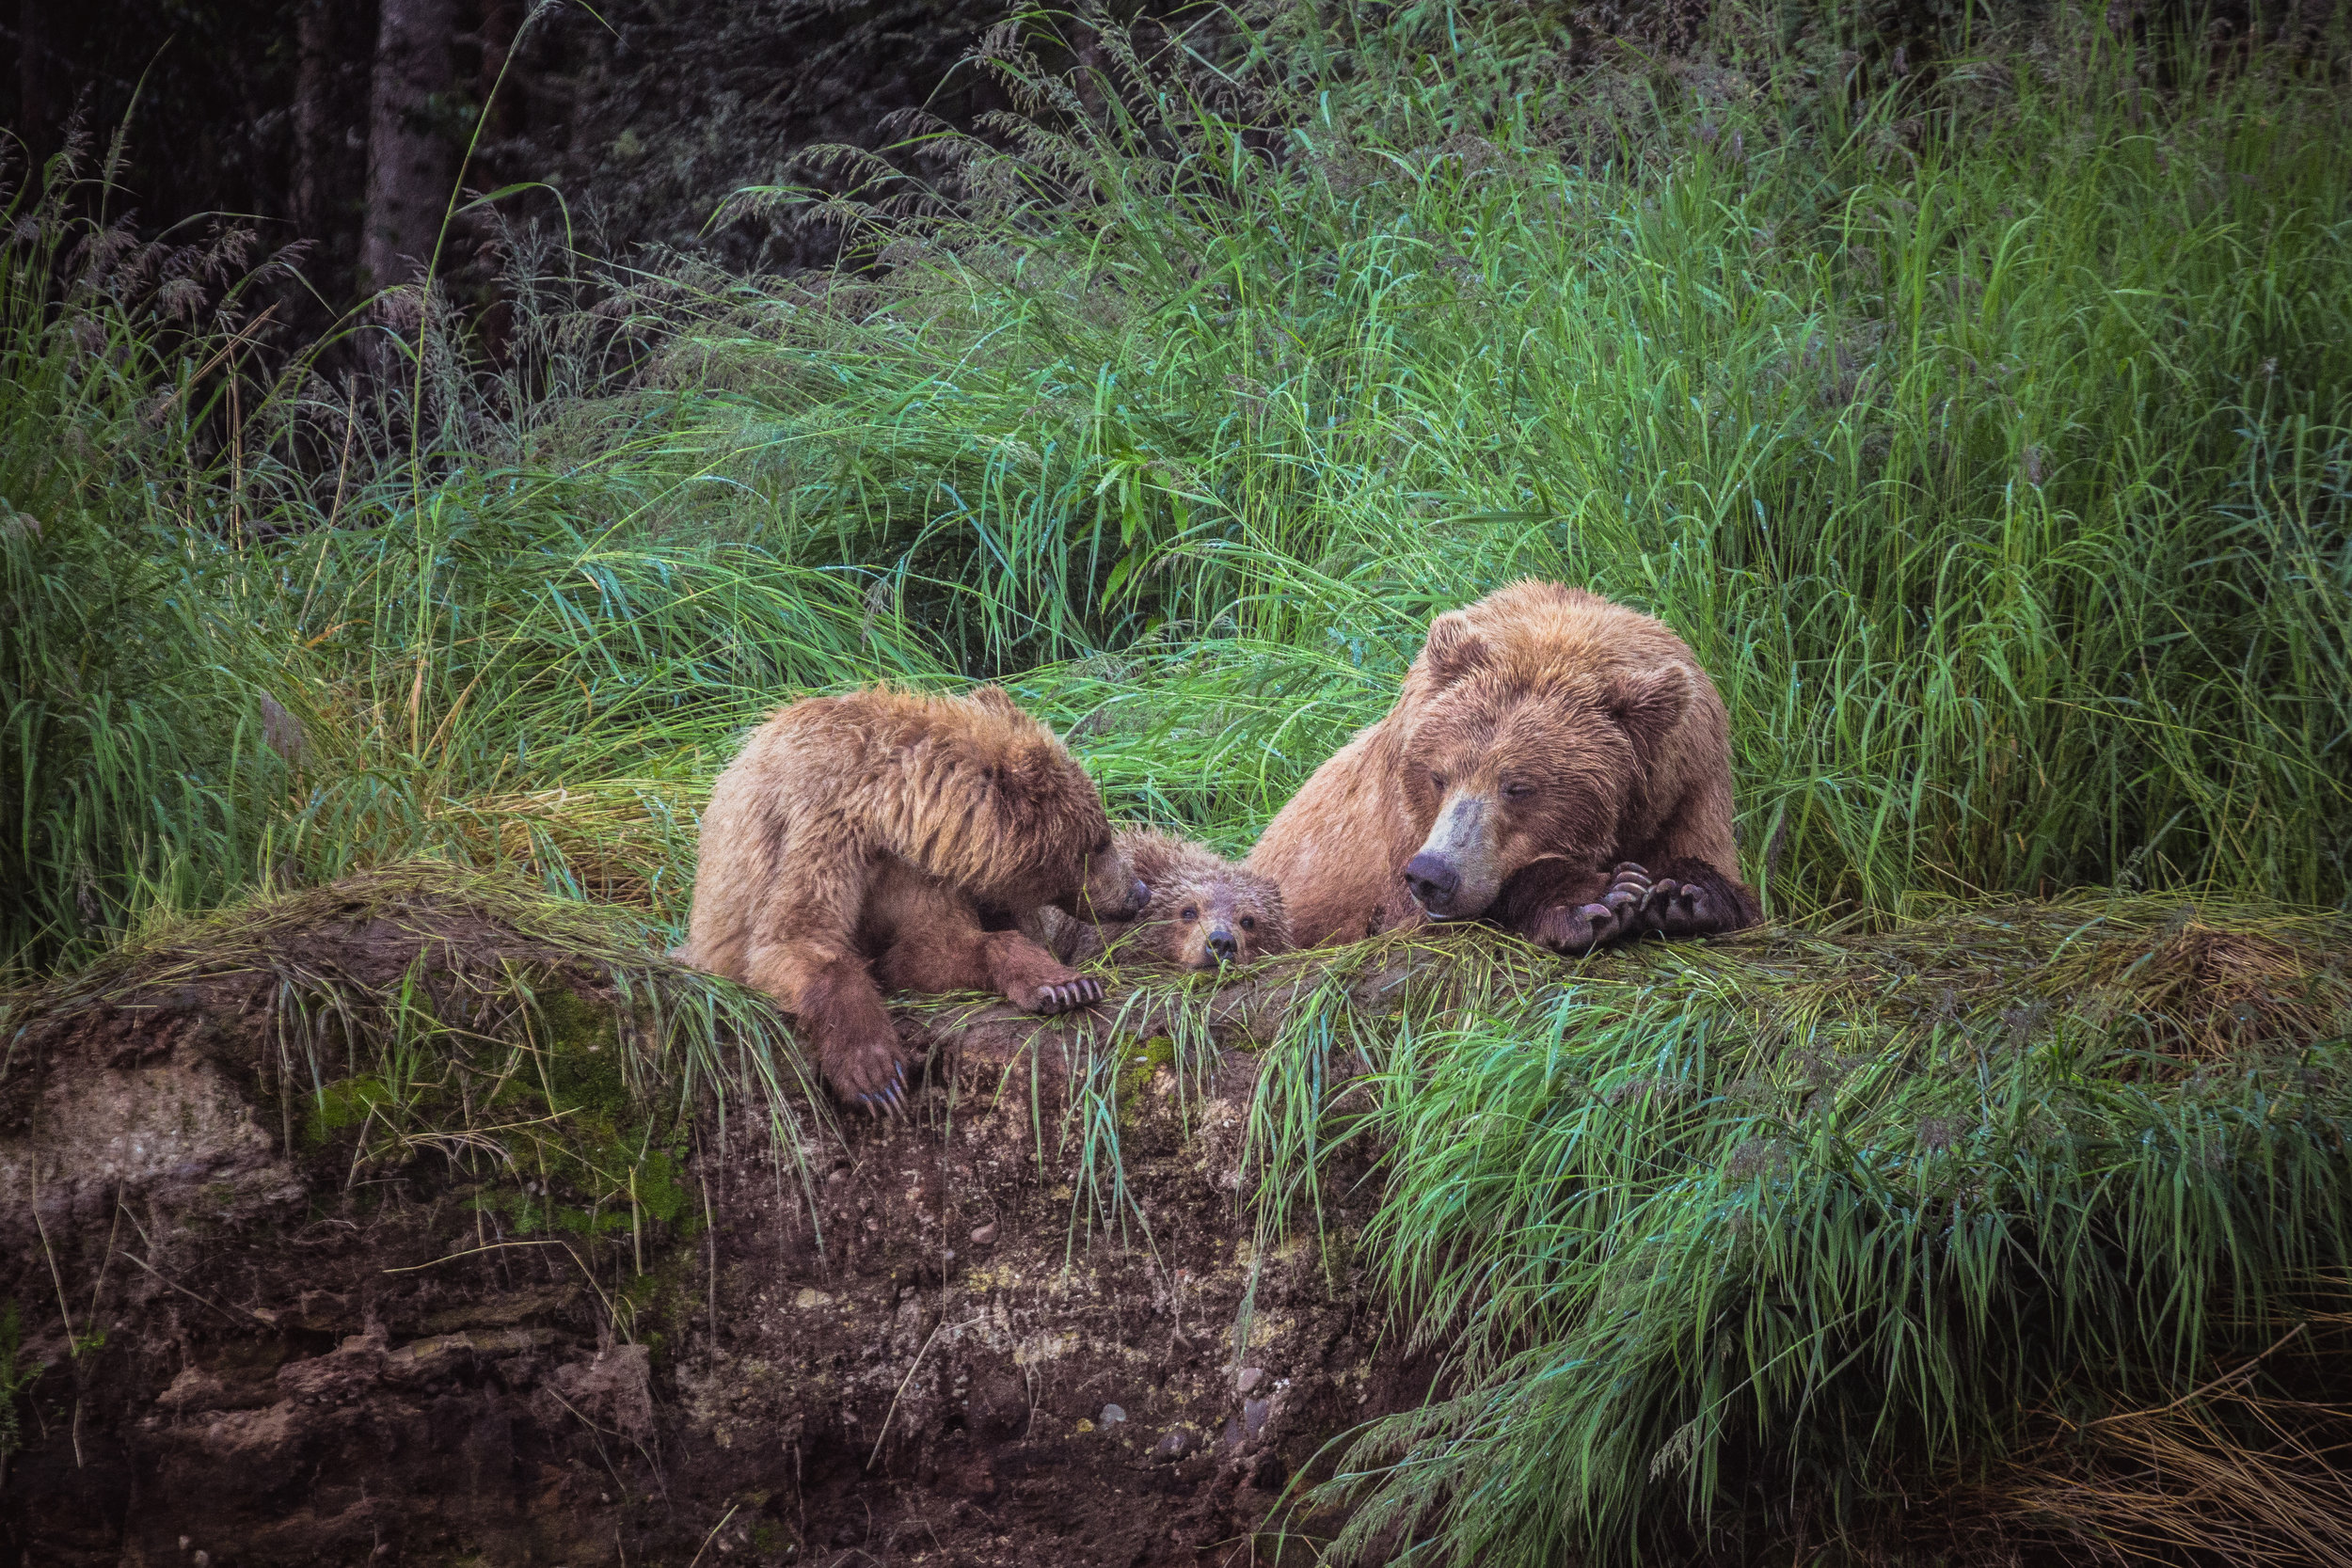 The physical space we give to bears and to ourselves matters a great deal. In the lower 48 states bears have relinquished all but a tiny sliver of their former habitat.